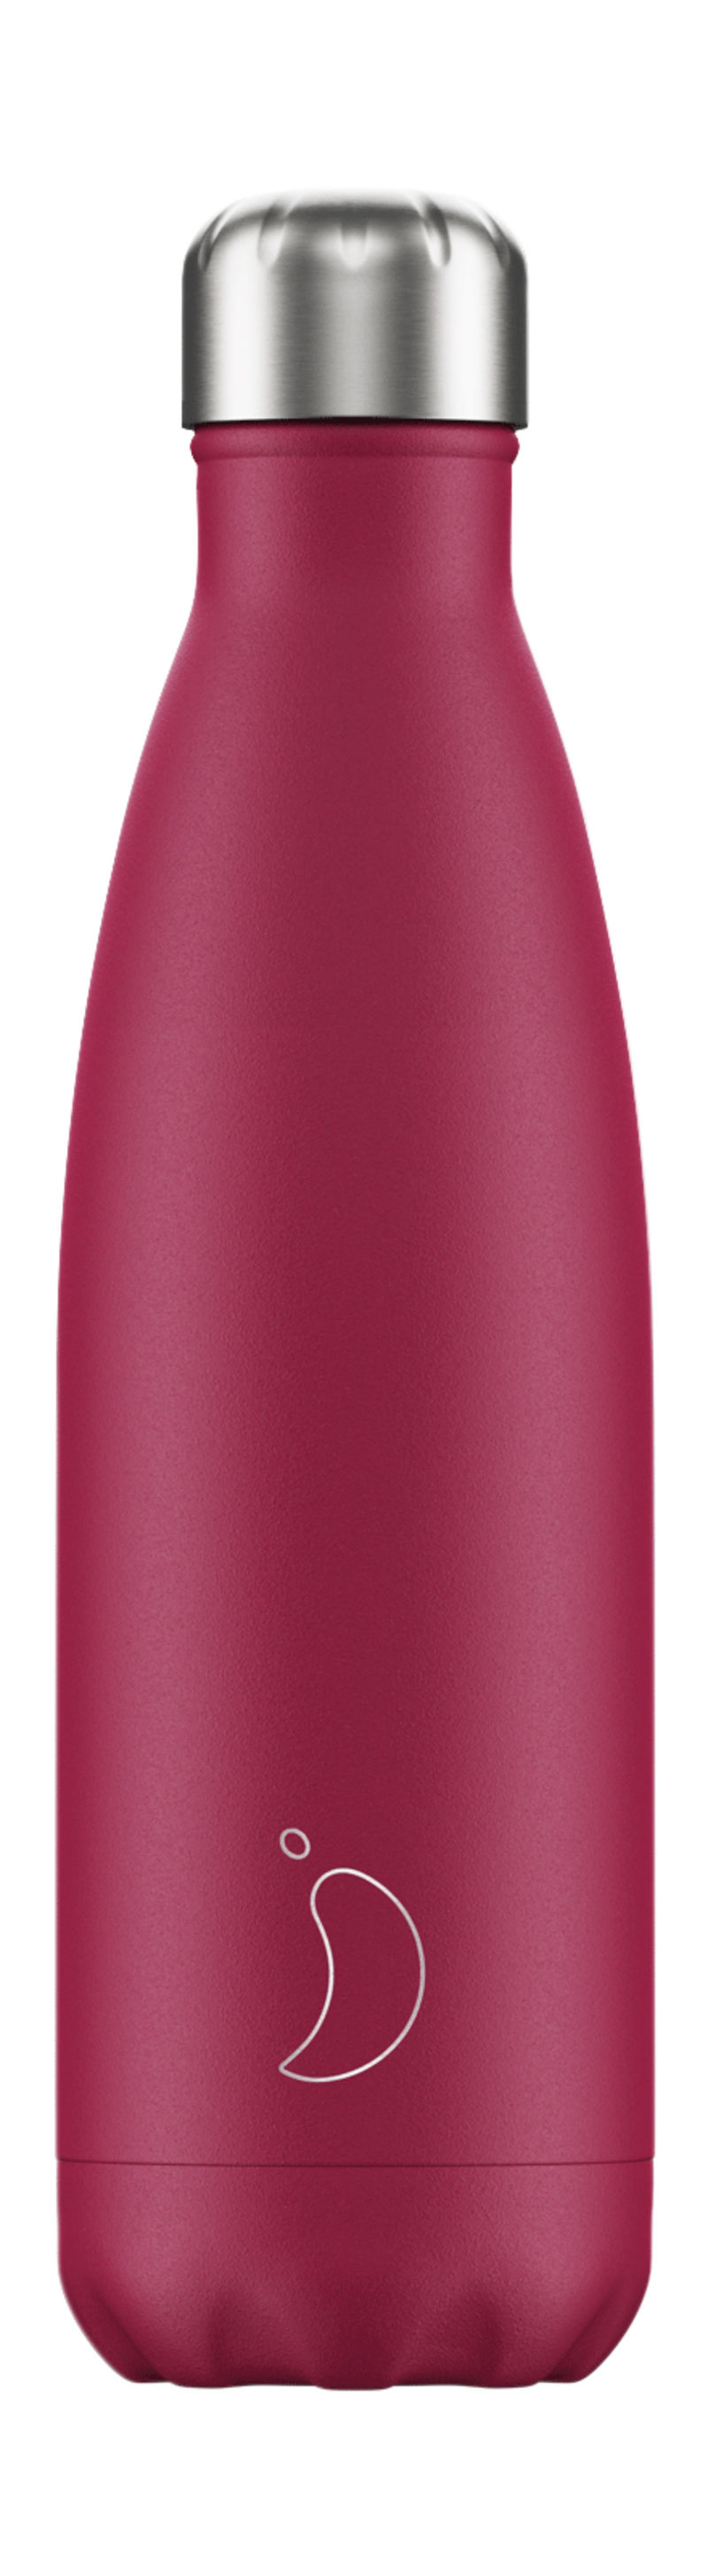 BOTELLA INOX FUCSIA MATE 500ml